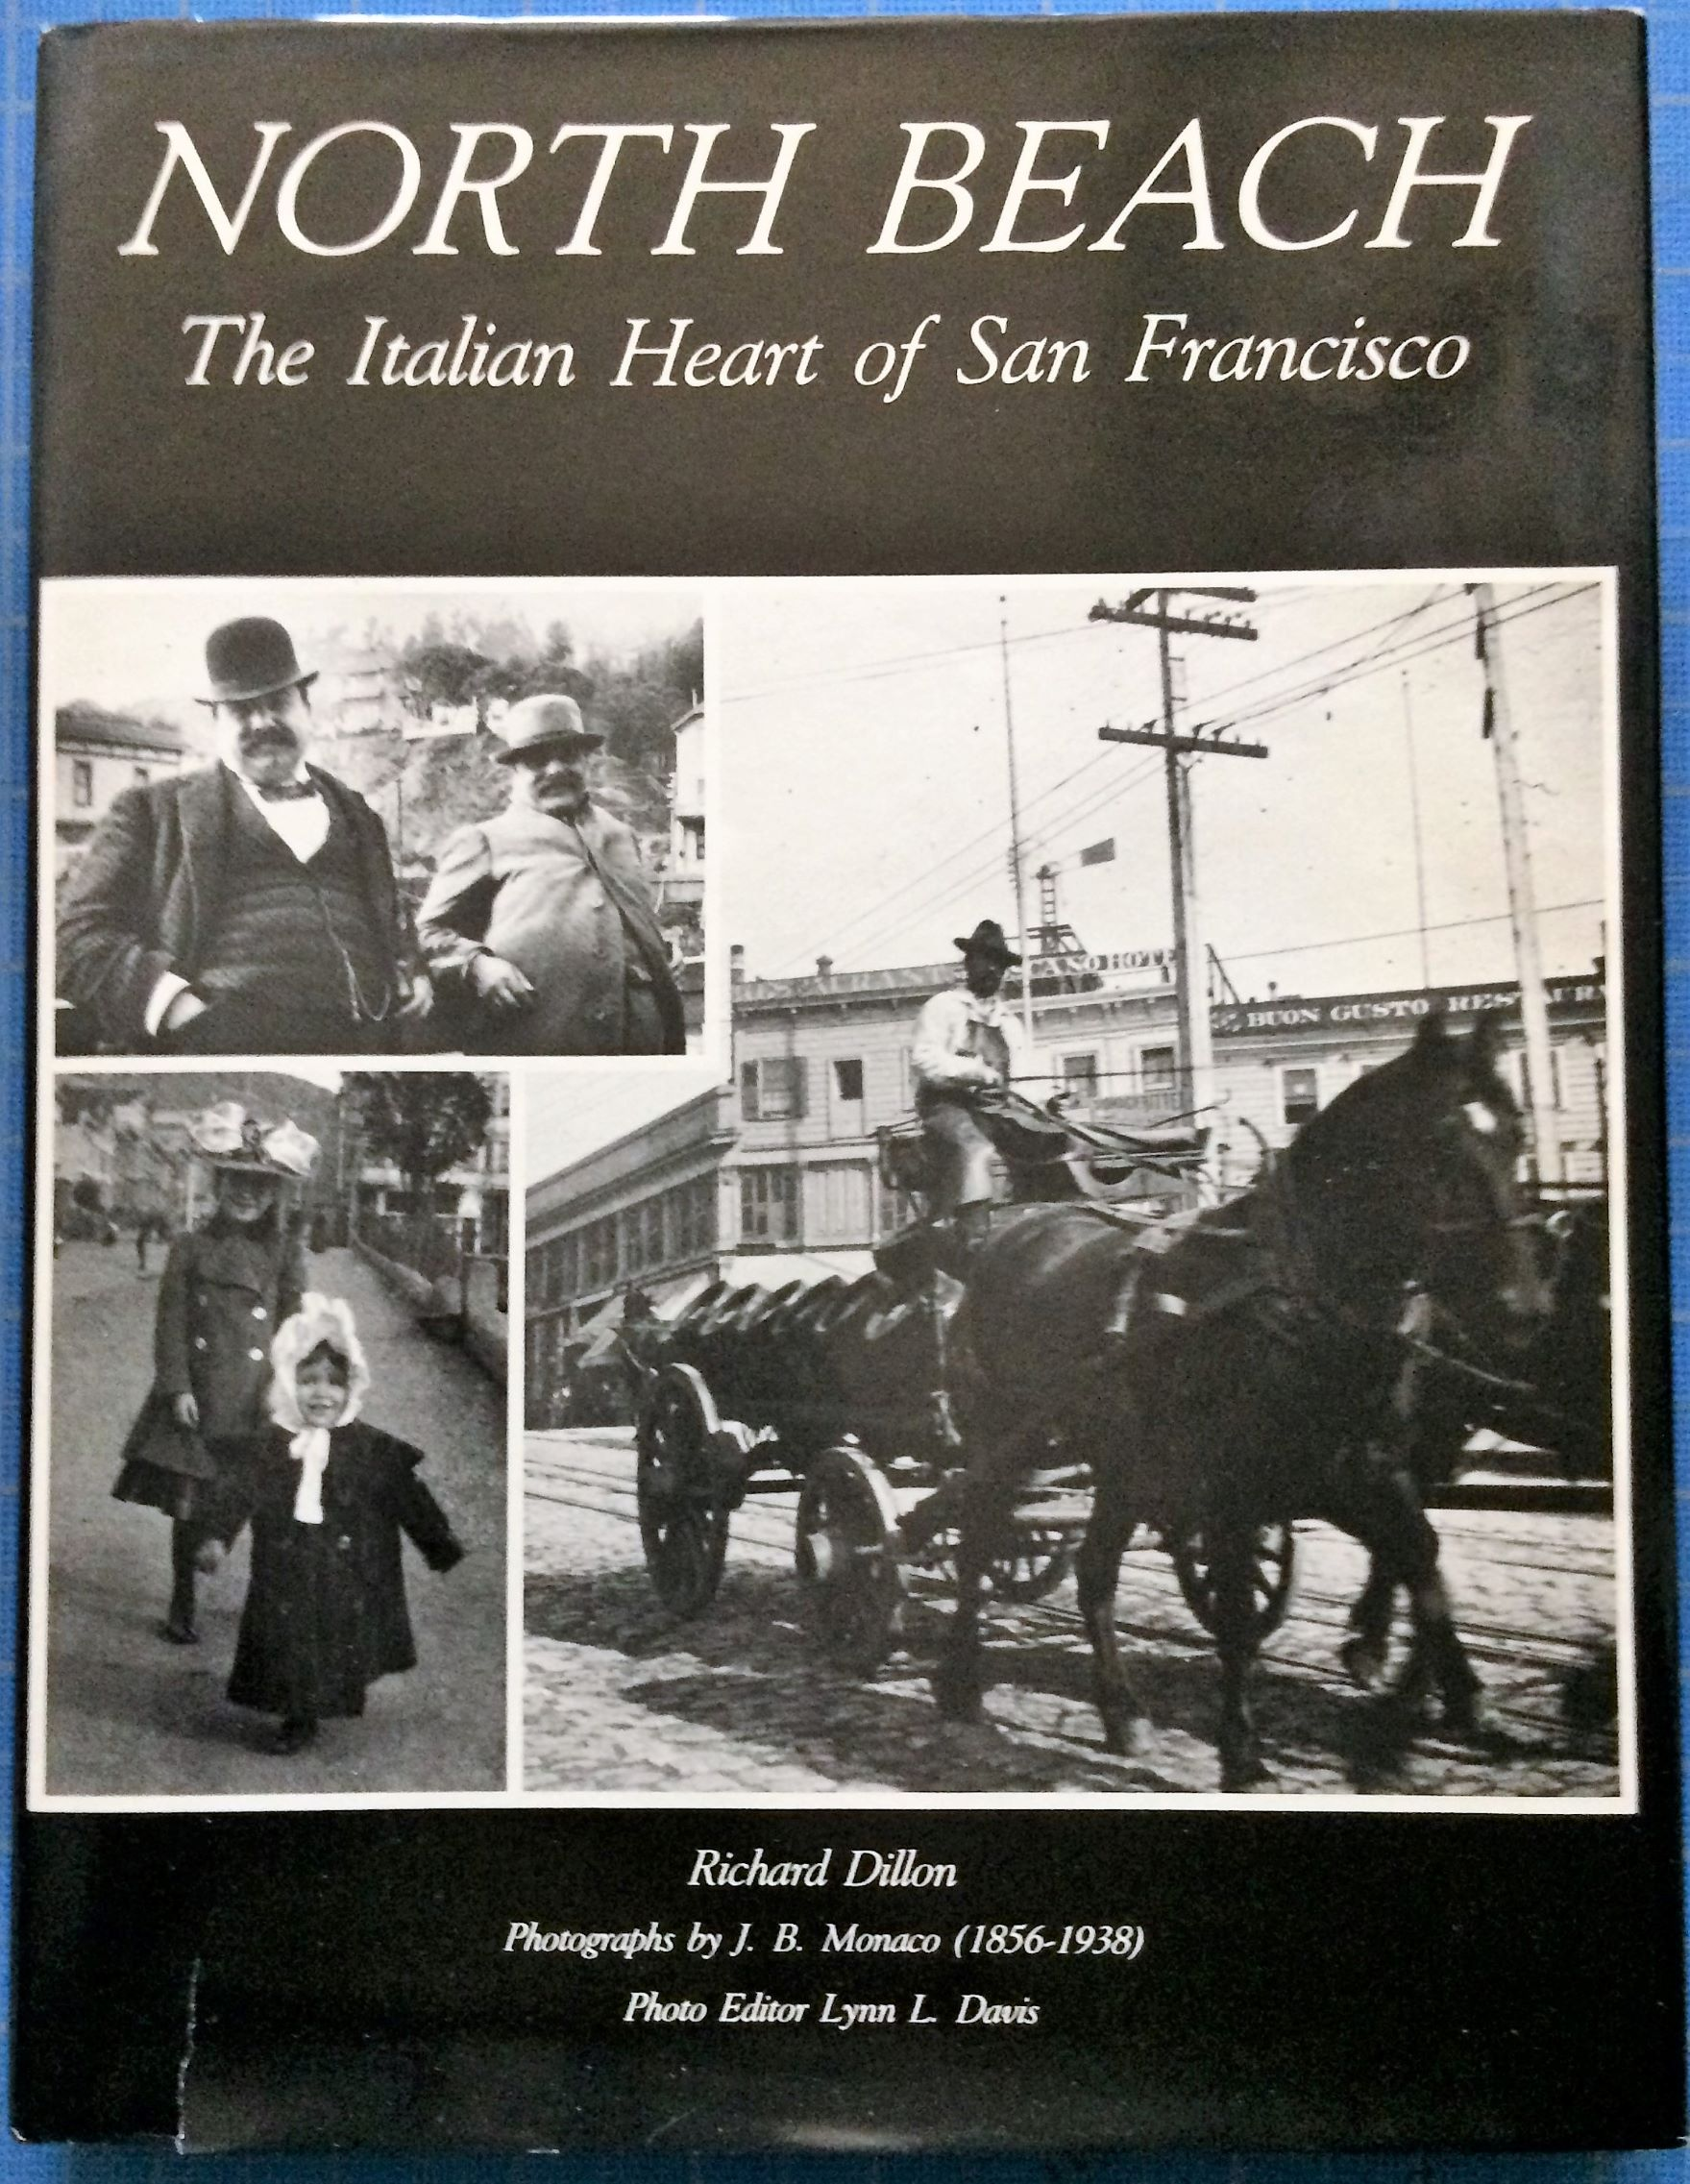 Image for North Beach, The Italian Heart of San Francisco.  Photographs by J. B. Monaco (1856-1938); Photo Editor Lynn L. Davis